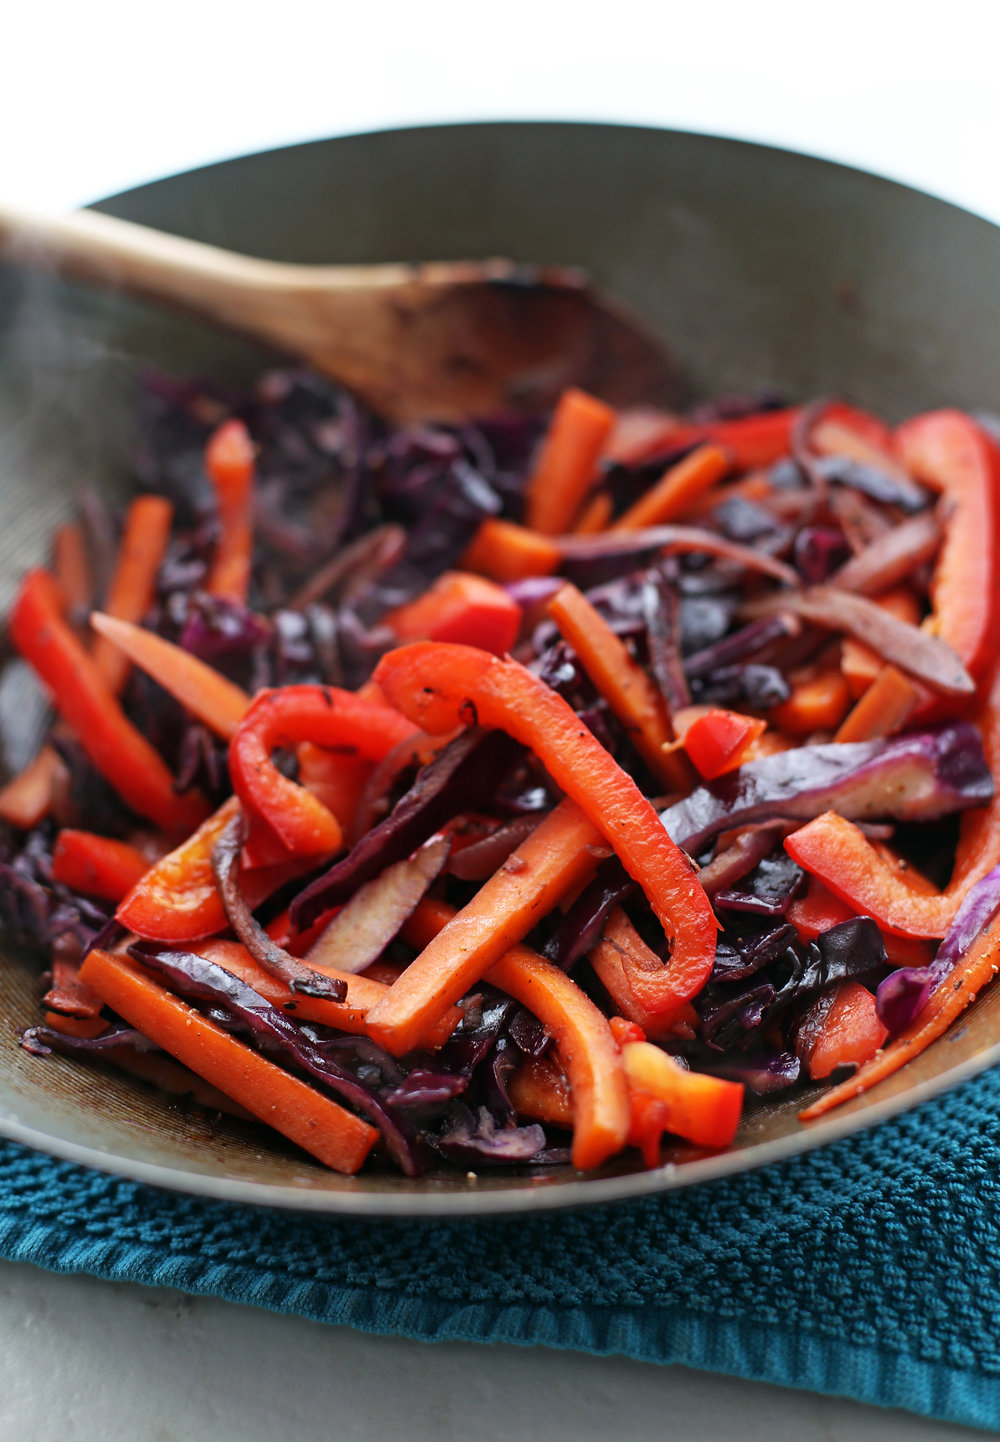 Stir-fried onions, bell pepper, red cabbage, and carrots in a large wok.